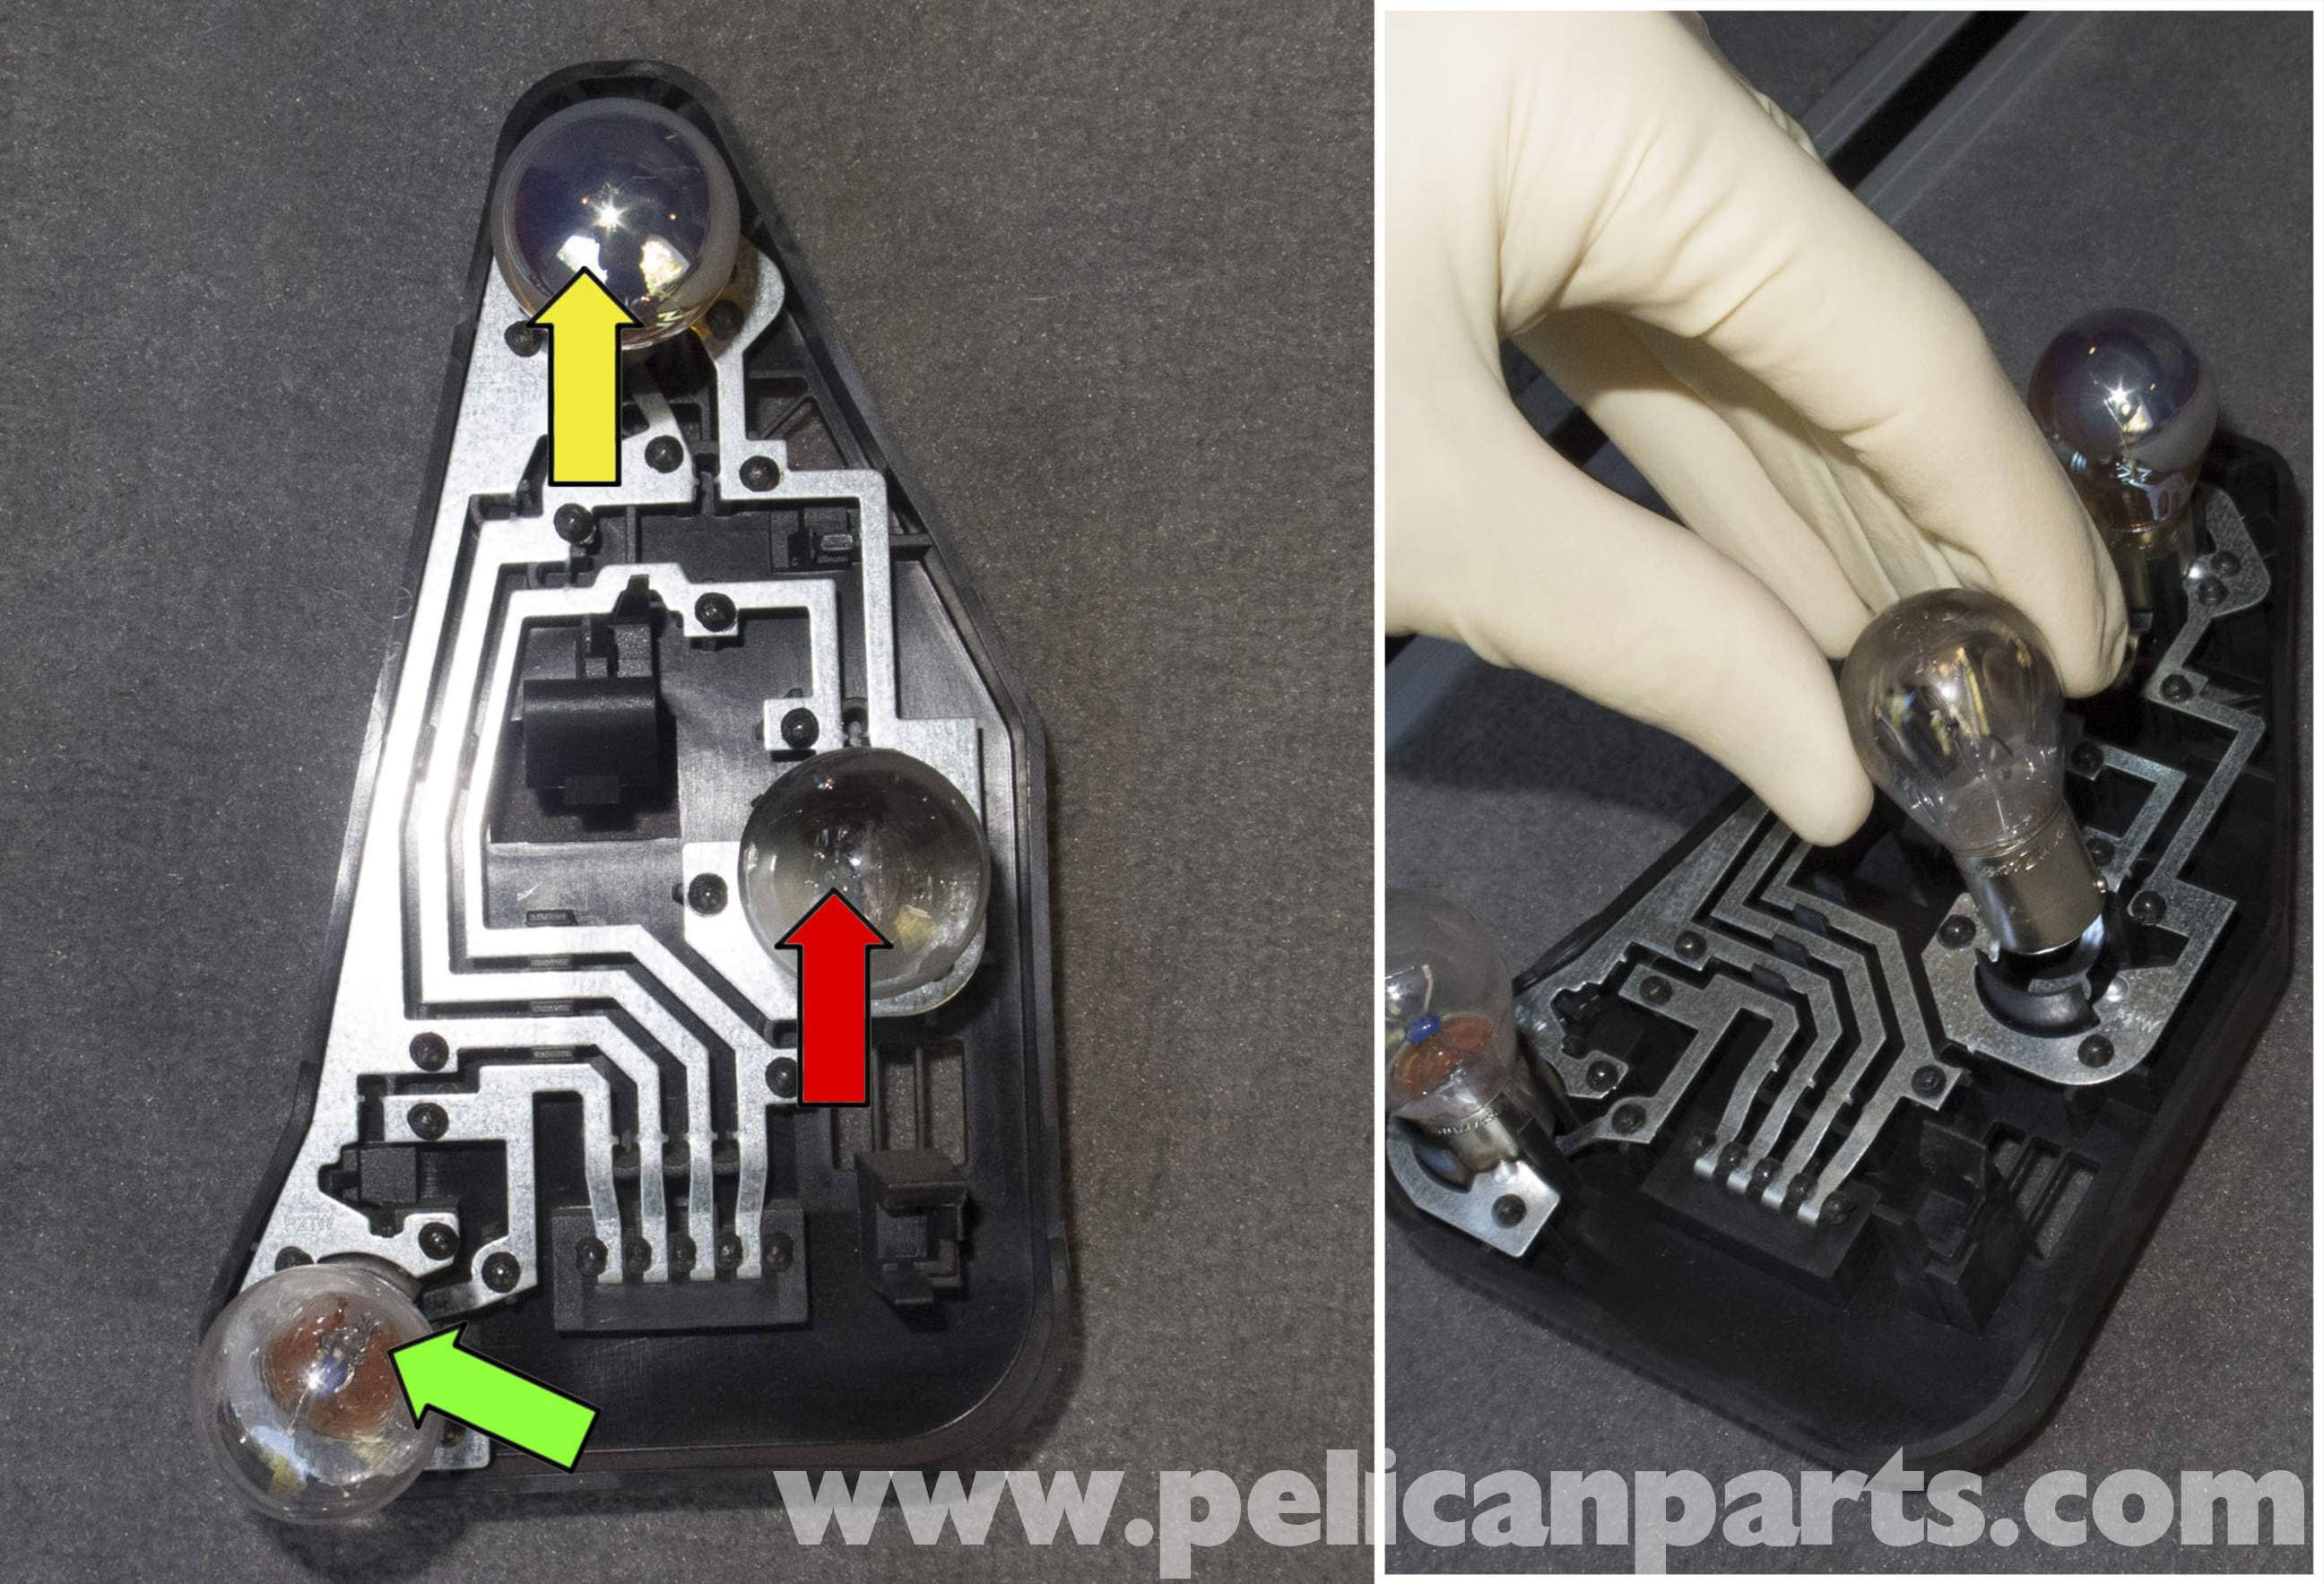 Magnificent Pelican Technical Article Bmw X3 Tail Light Early Replacement Wiring Digital Resources Cettecompassionincorg